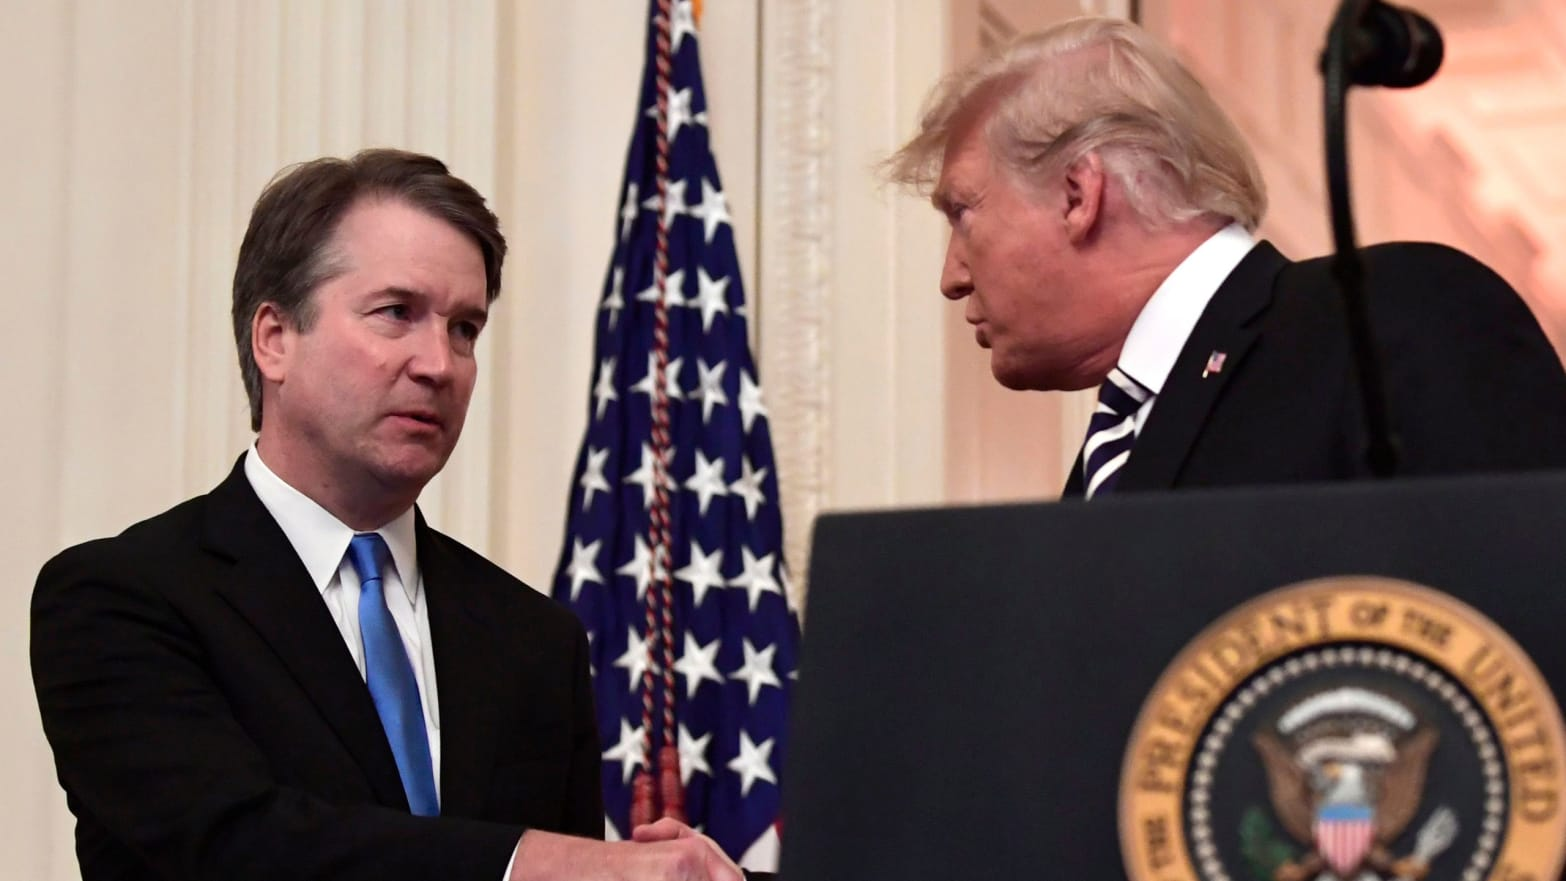 brett kavanaugh shaking hands with donald trump christine blasey ford supreme court justice judge sexual assault rape survivor #metoo metoo women female trauma ptsd psychology psychiatry farber horner